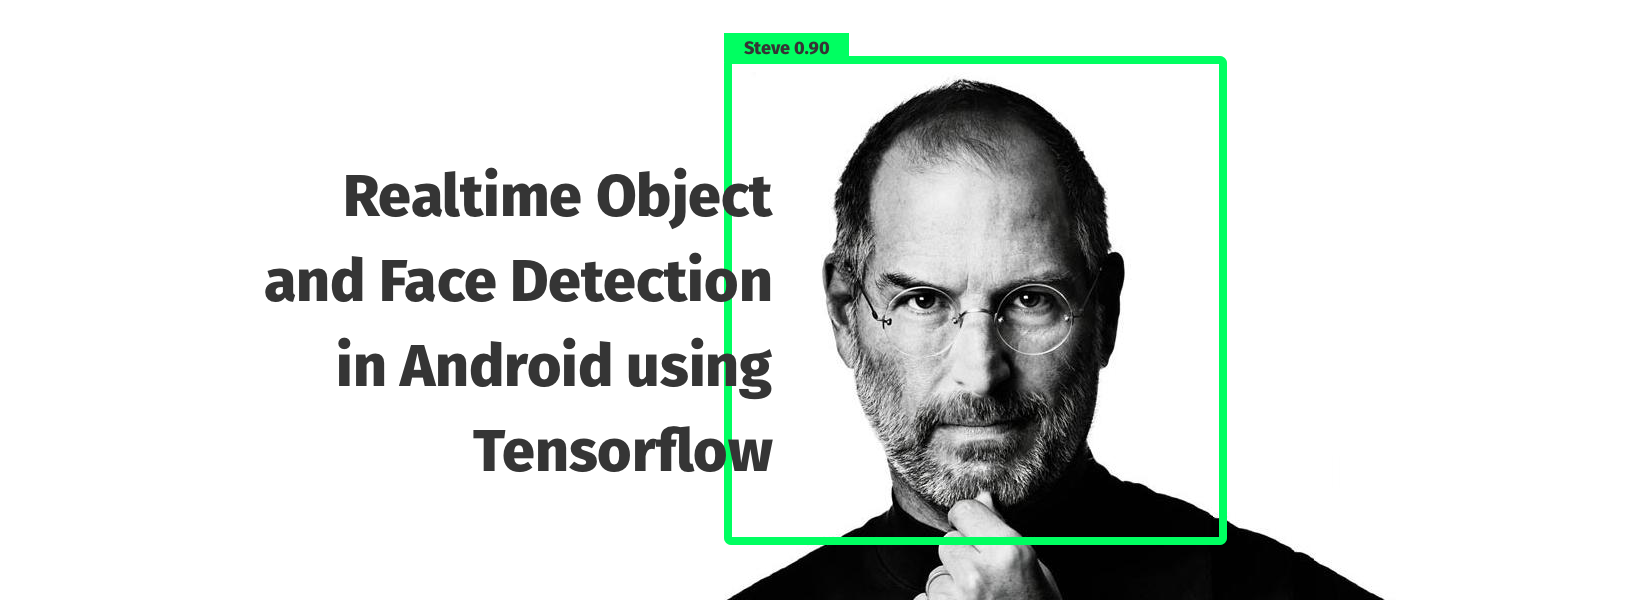 Realtime Object and Face Detection in Android using Tensorflow Object Detection API